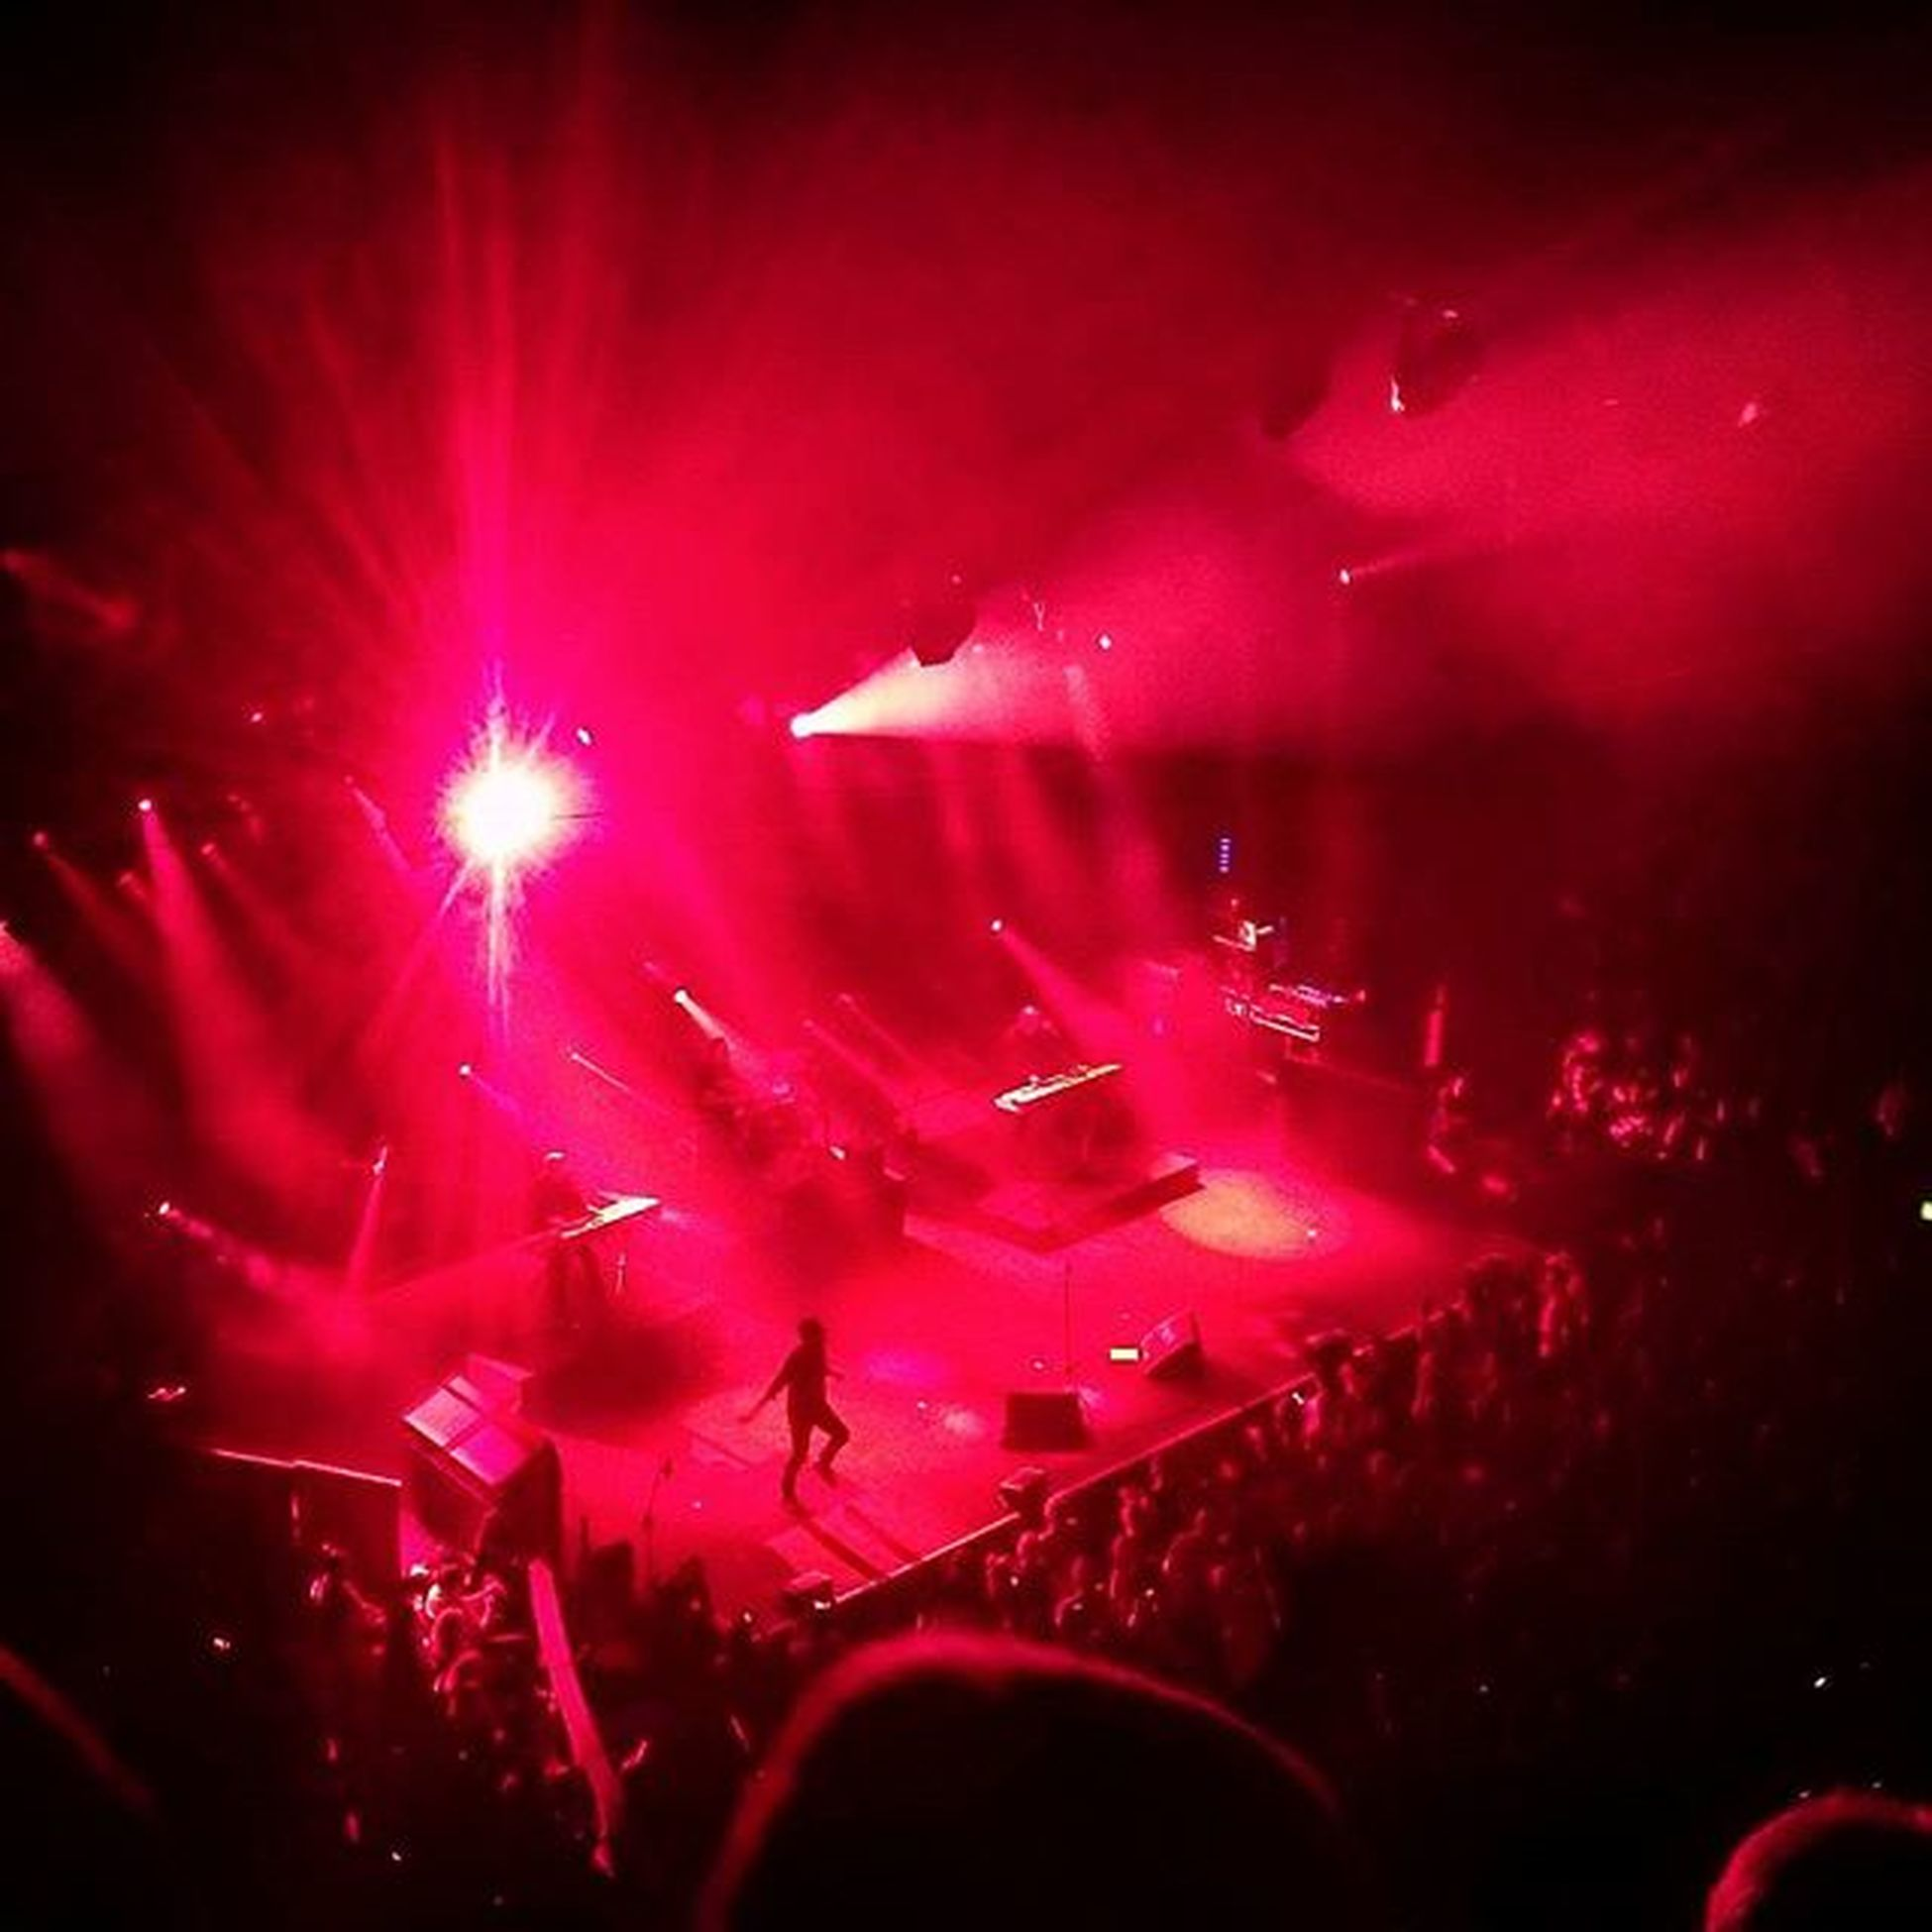 OMD performing @ the Royal Albert Hall.. Omd RoyalAlbertHall London Orchestralmanoeuvresinthedark Dazzleships Architectureandmorality Live Music LiveMusic Stage Concert Gig Band Crowd May ICAN Sonyxperia XPERIA Capture Snapshot